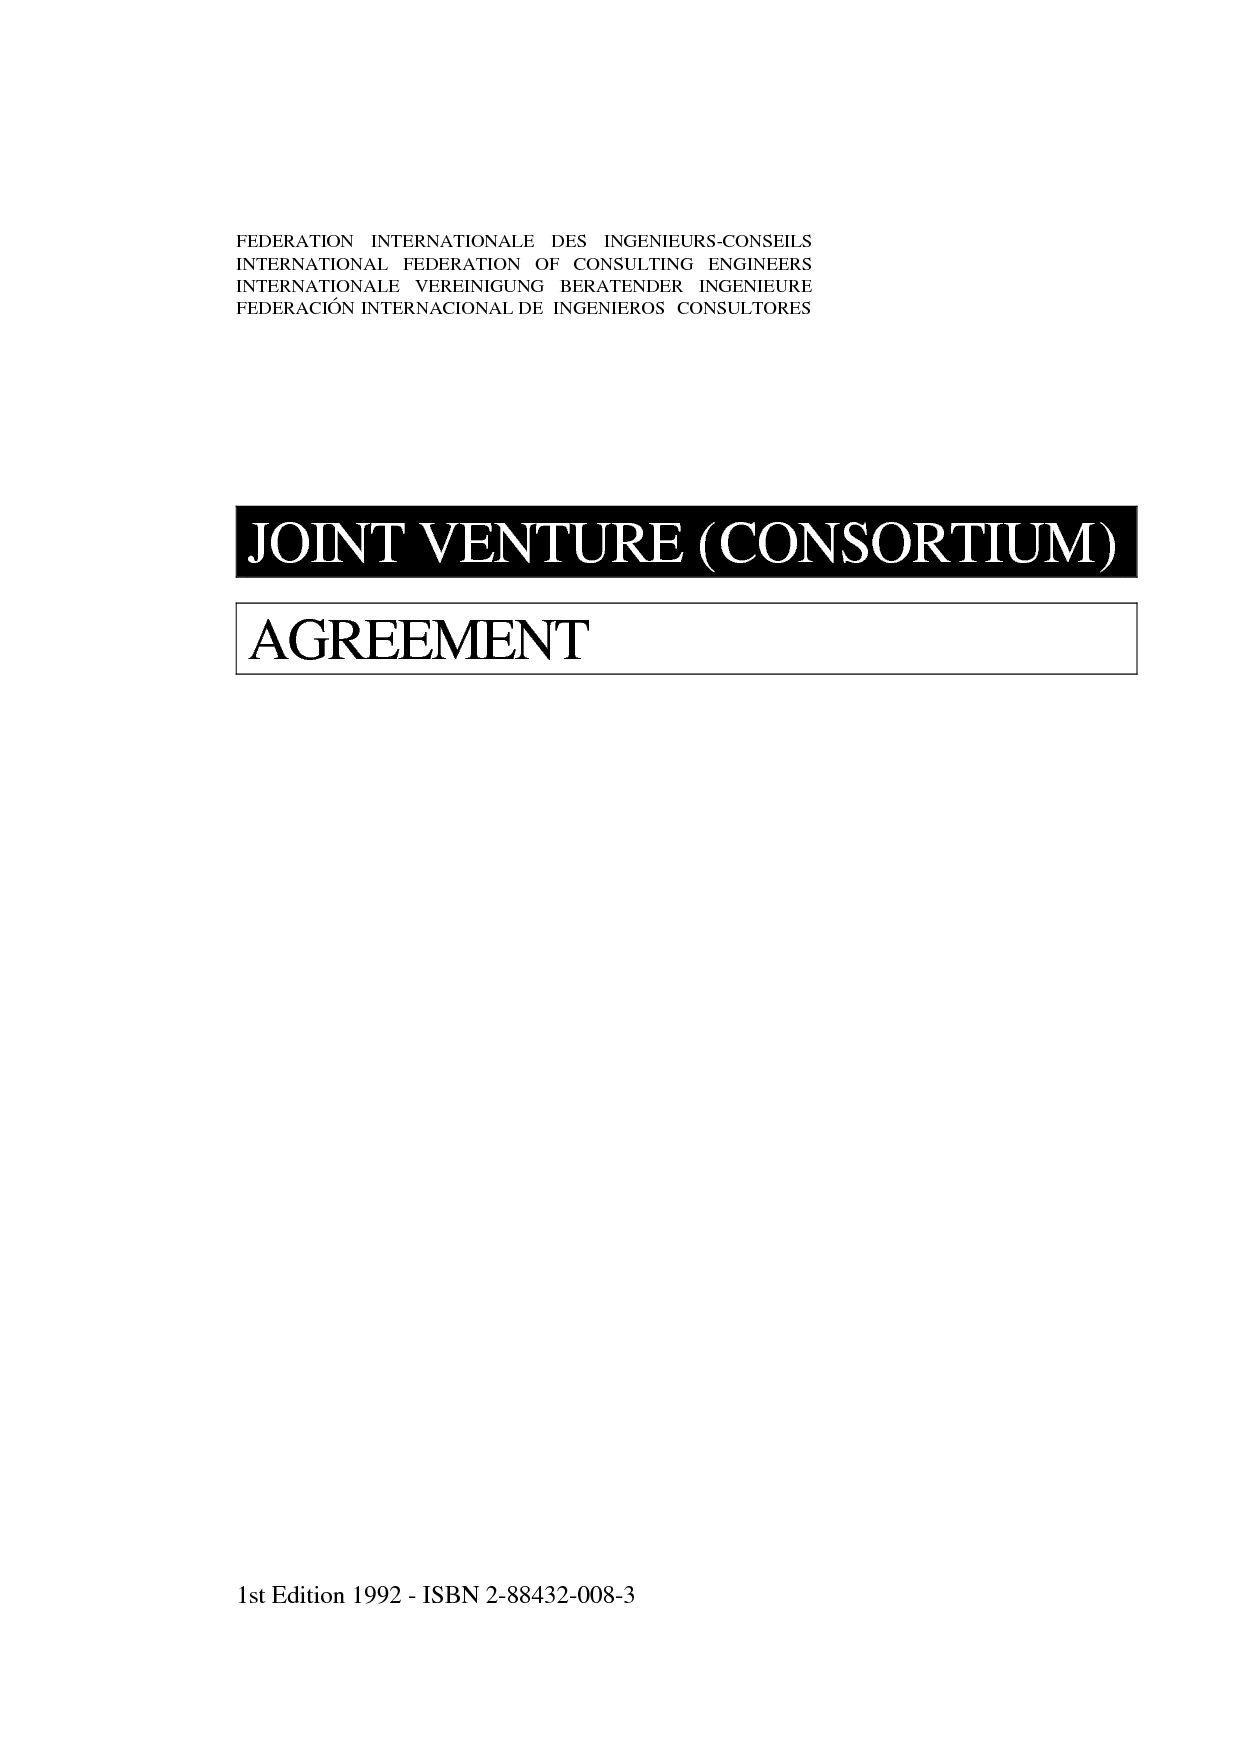 Joint Venture Agreement 1st Ed 1992 International Federation Of